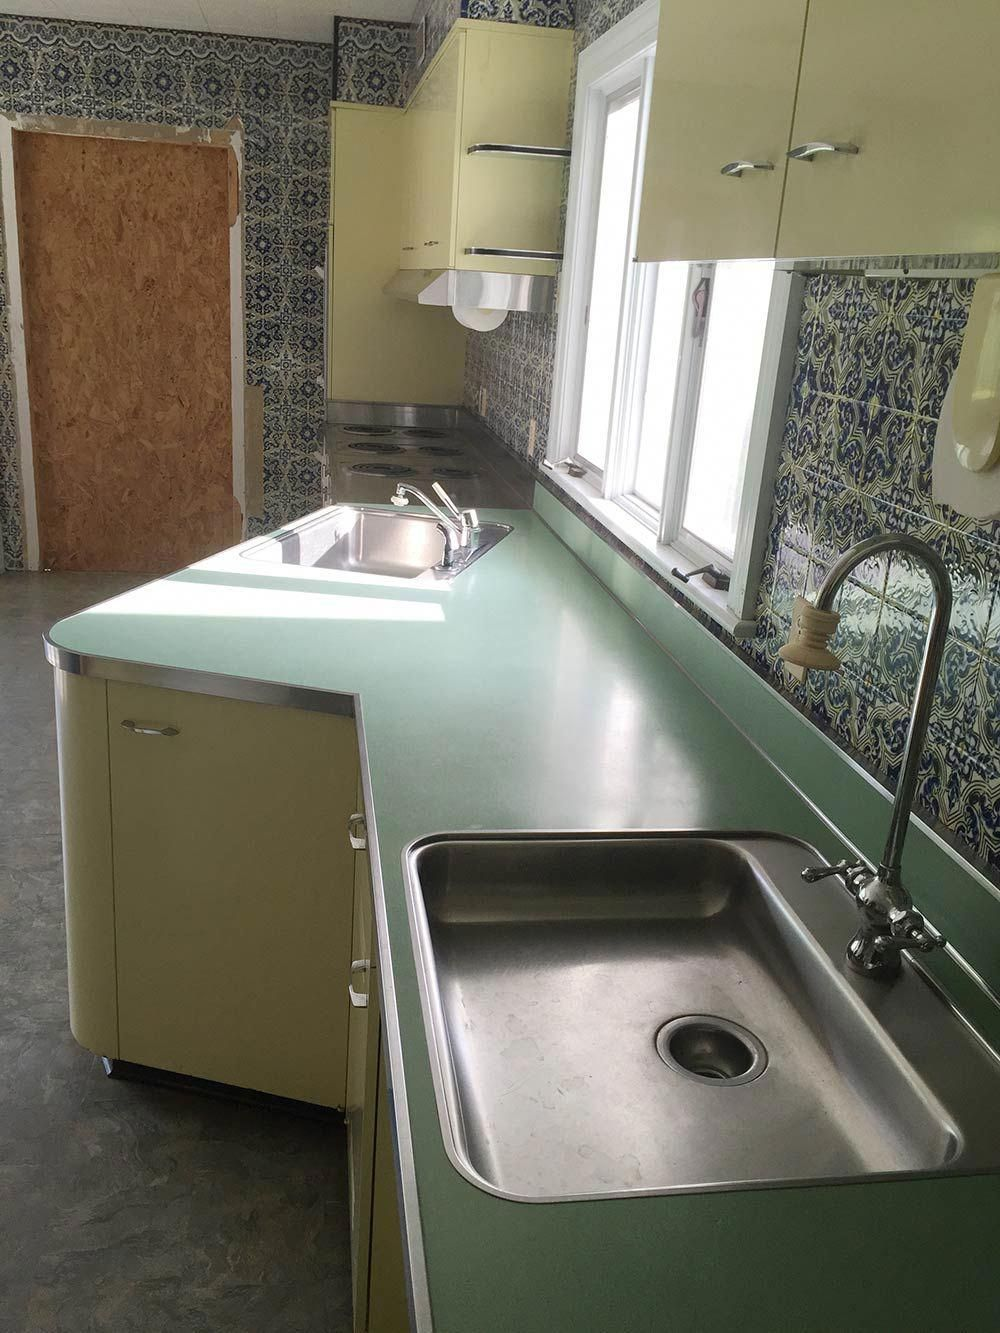 Vintage St Charles Kitchen Cabinets With Thermador Ovens And Lots More In 2020 Outdoor Kitchen Cabinets Kitchen Cabinets Vintage Cabinets